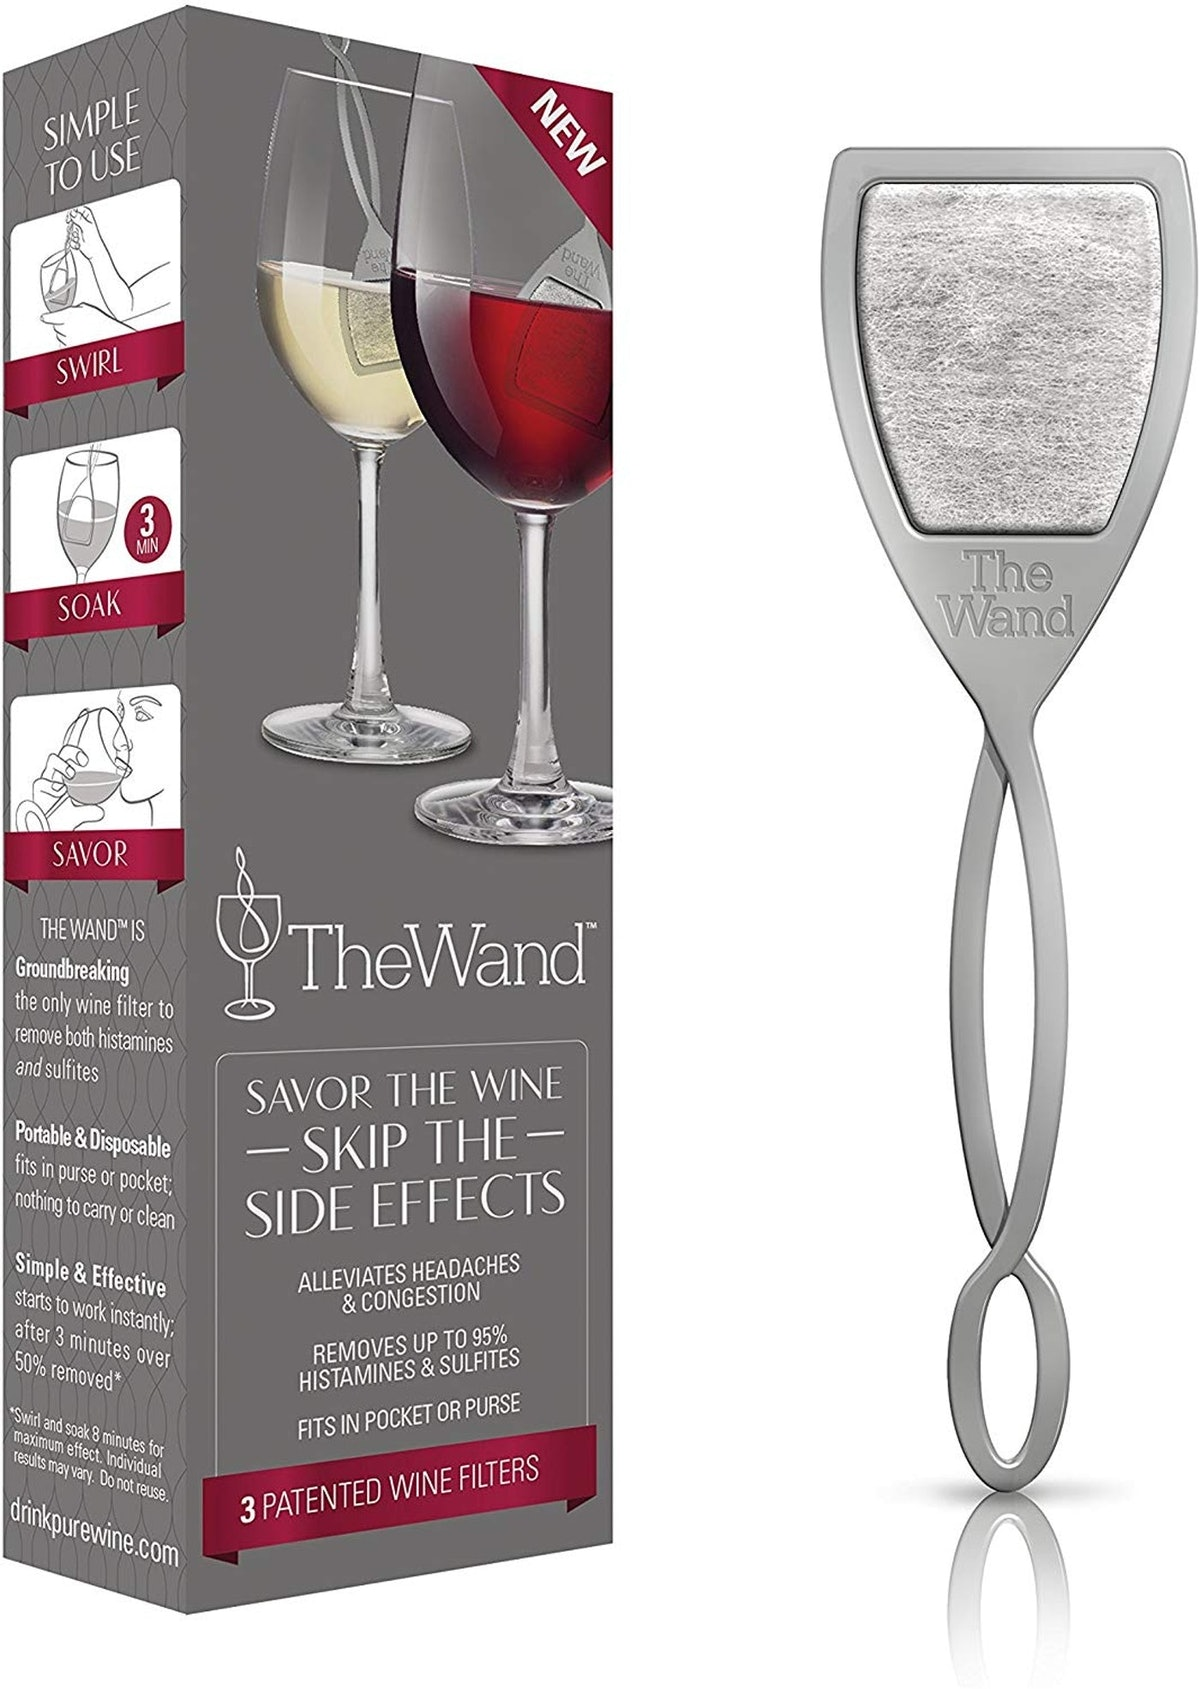 The Wand Wine Filter by PureWine (3-Pack)